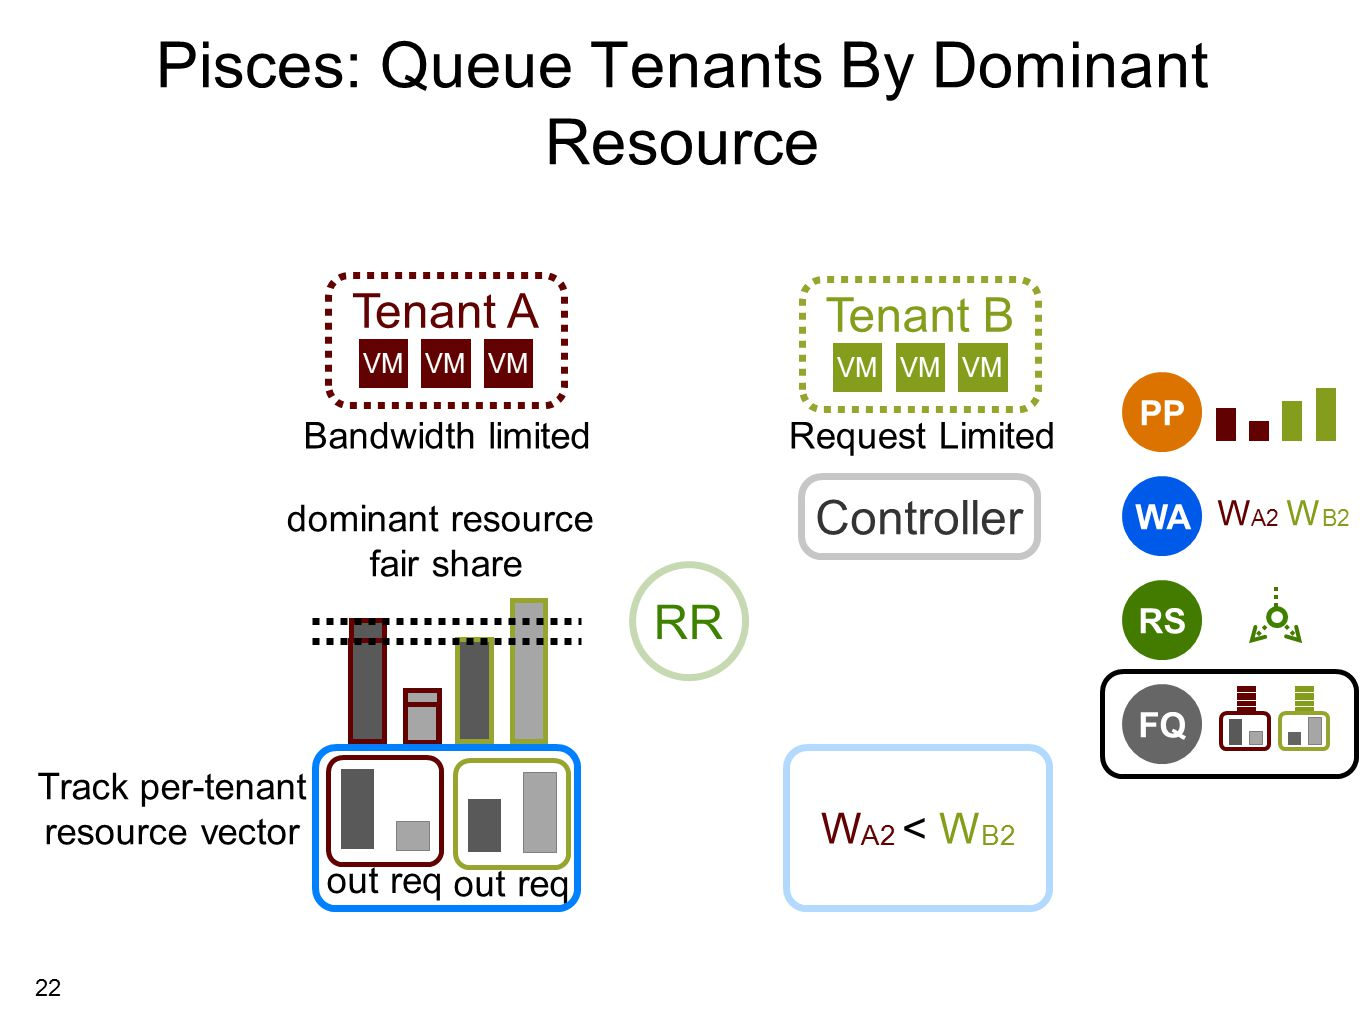 22 Pisces: Queue Tenants By Dominant Resource Bandwidth limitedRequest Limited outreq outreq Tenant A Tenant B VM bottlenecked by out bytes Track per-tenant resource vector dominant resource fair share Controller RS PP WA W A2 W B2 FQ W A2 < W B2 RR